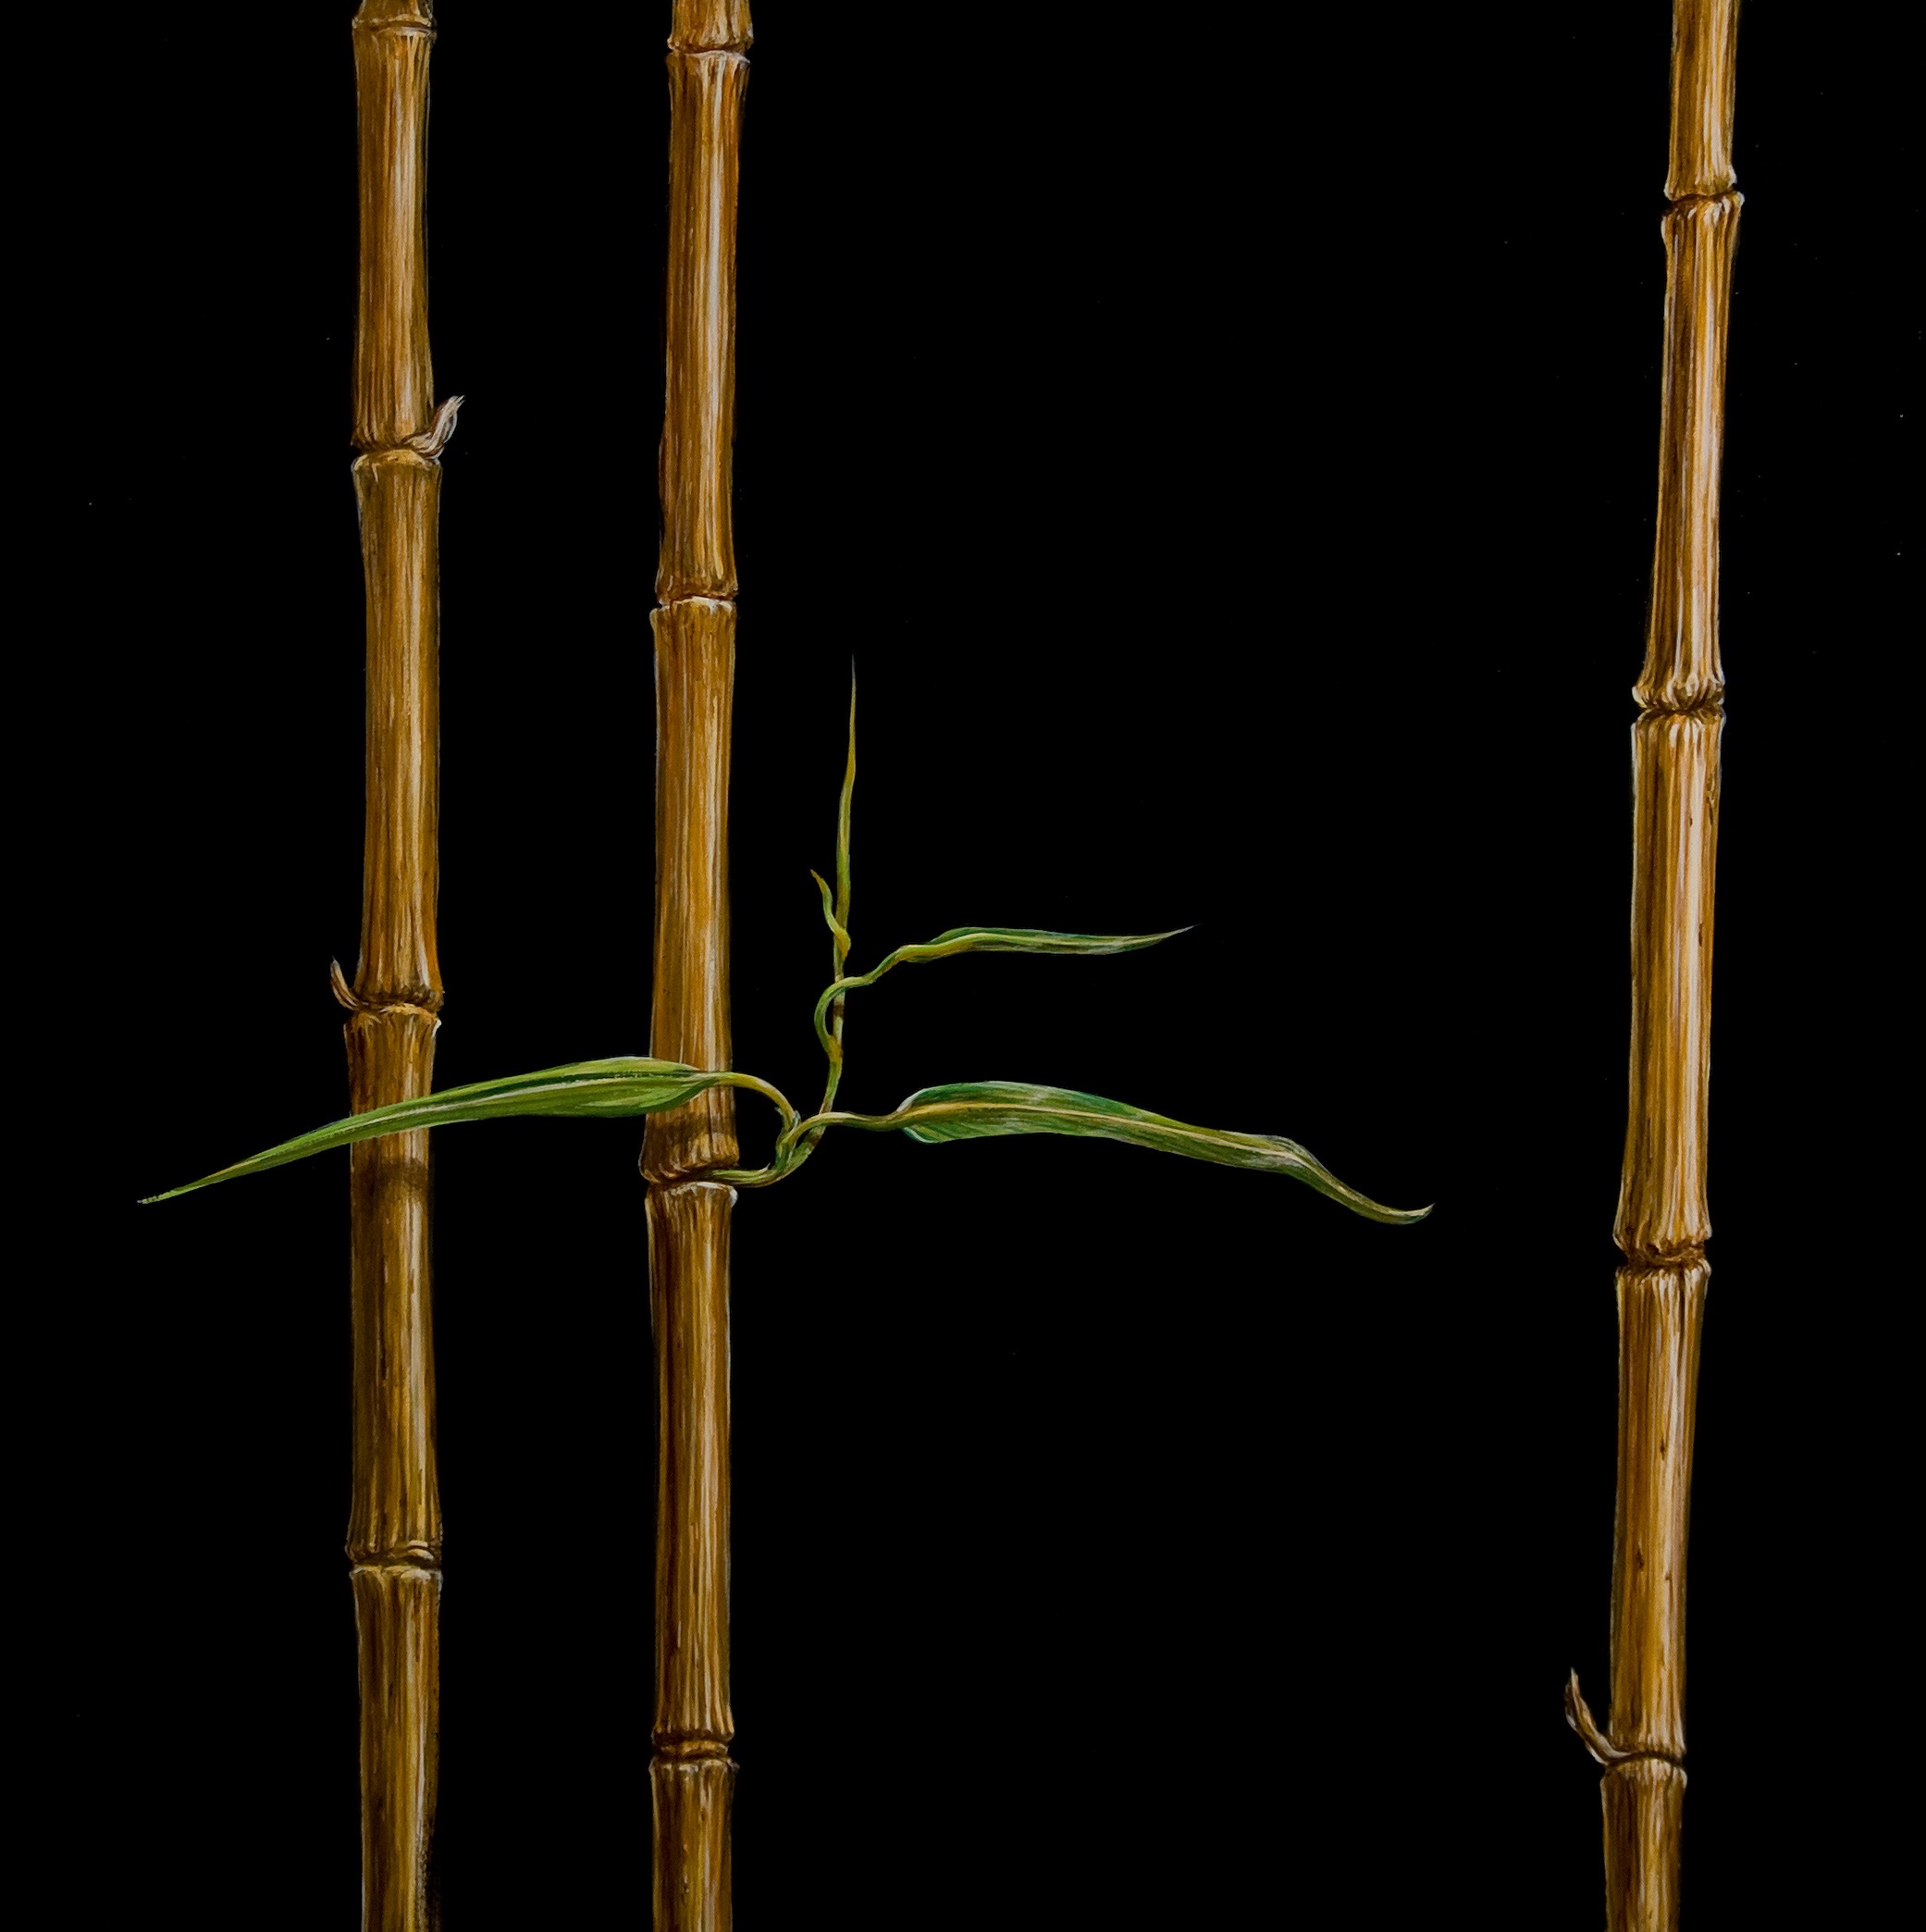 Bamboo black oil on panel 24 x 24